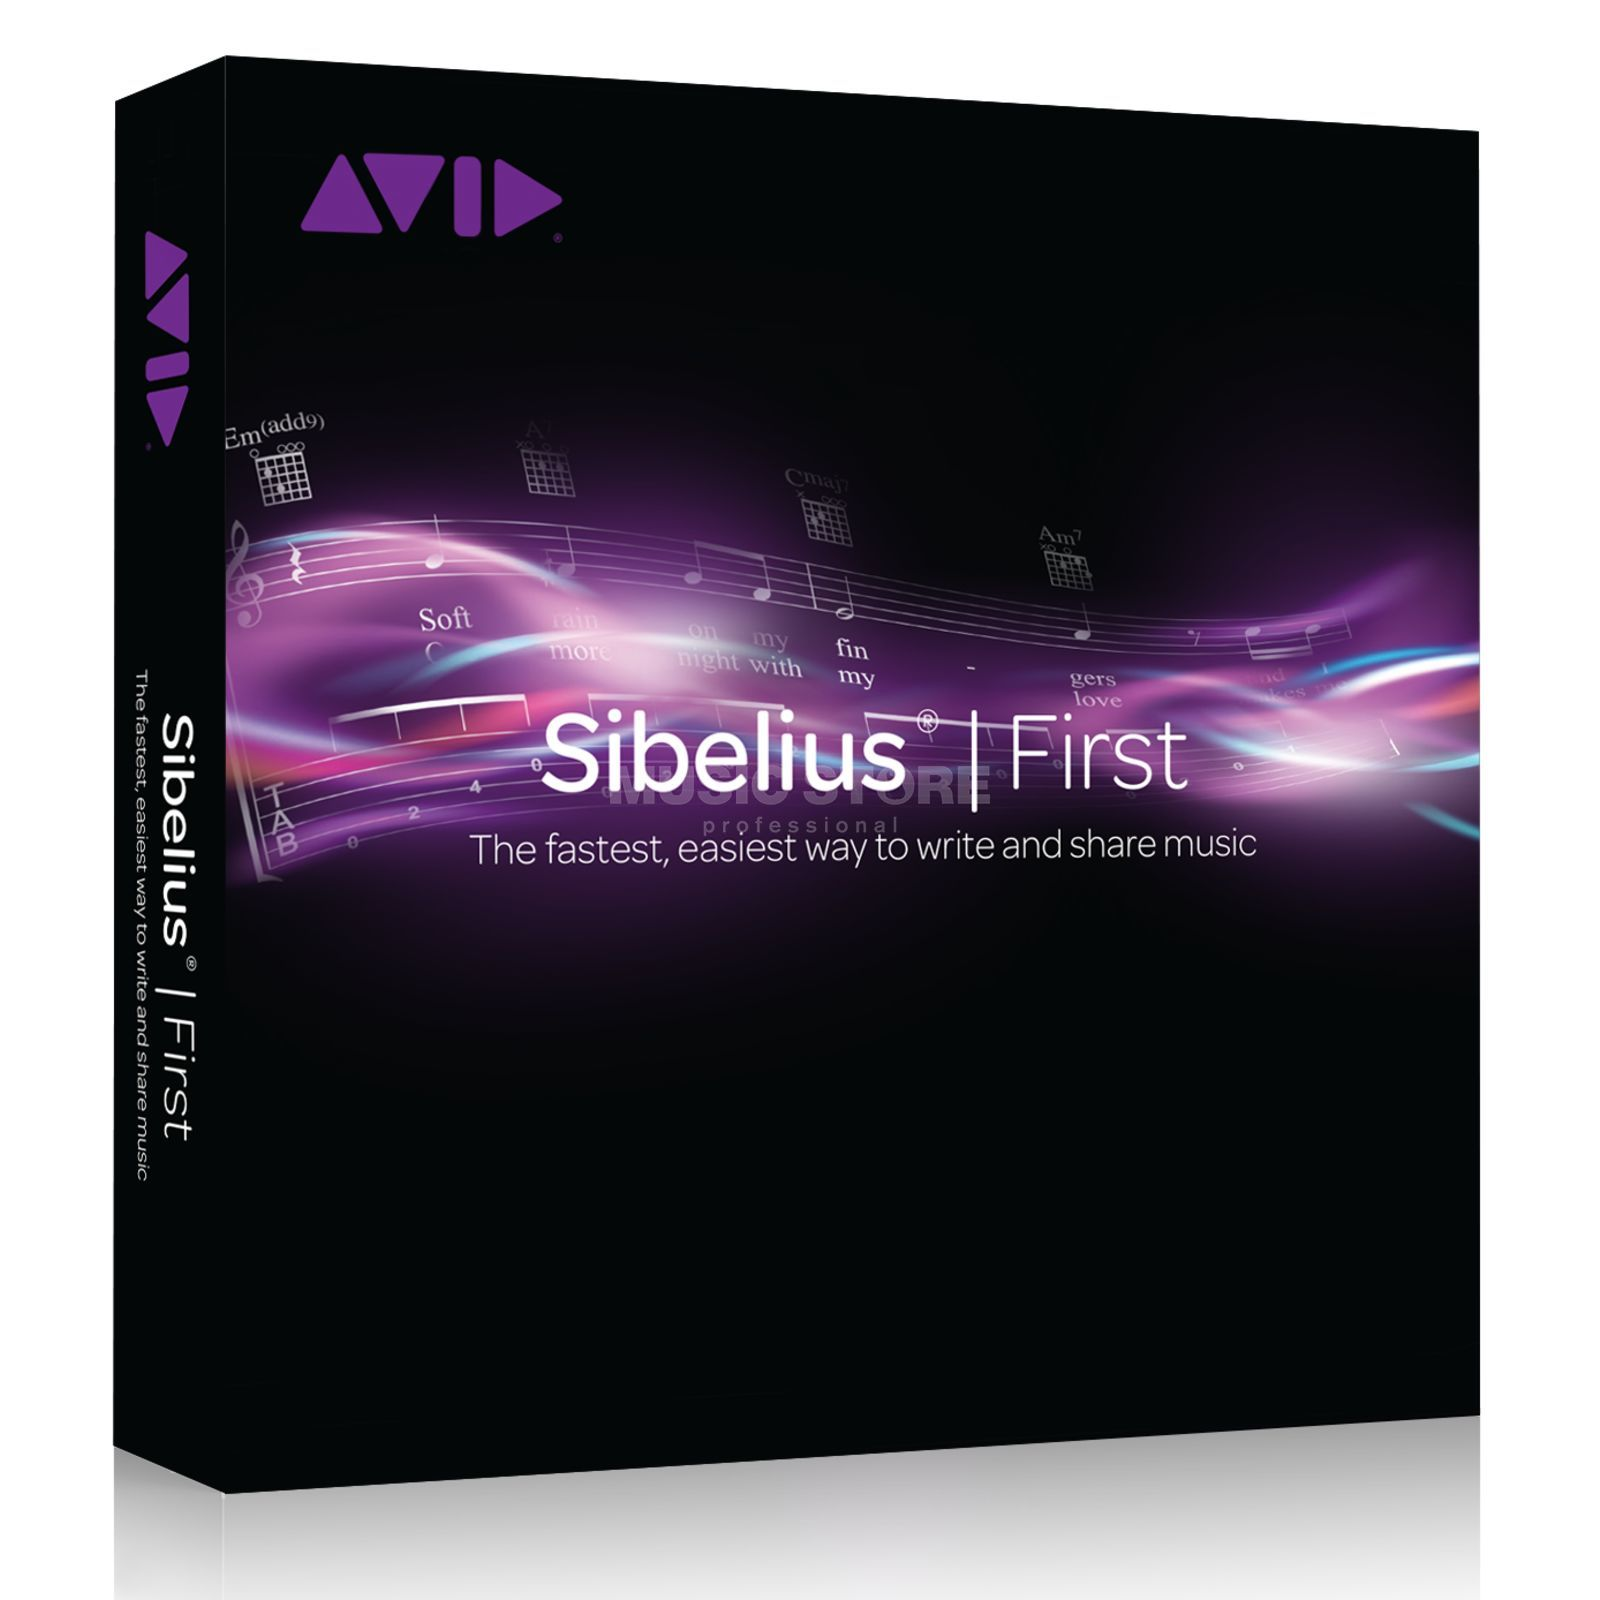 Avid Sibelius First Audio Scoring &  Song Arrangement Software   Produktbillede